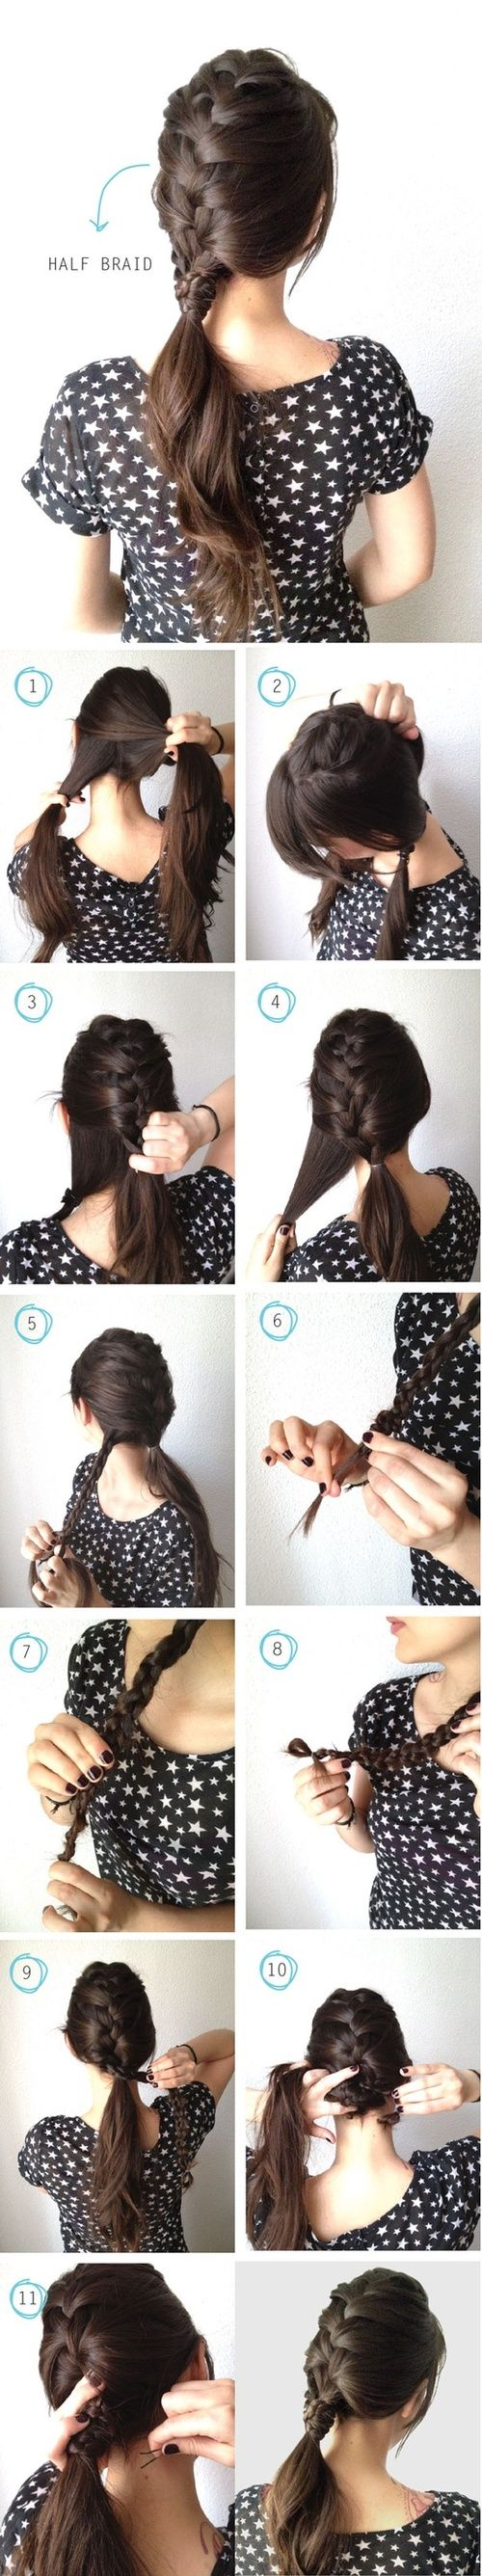 half braid tutorial or even do a fishtail braid!